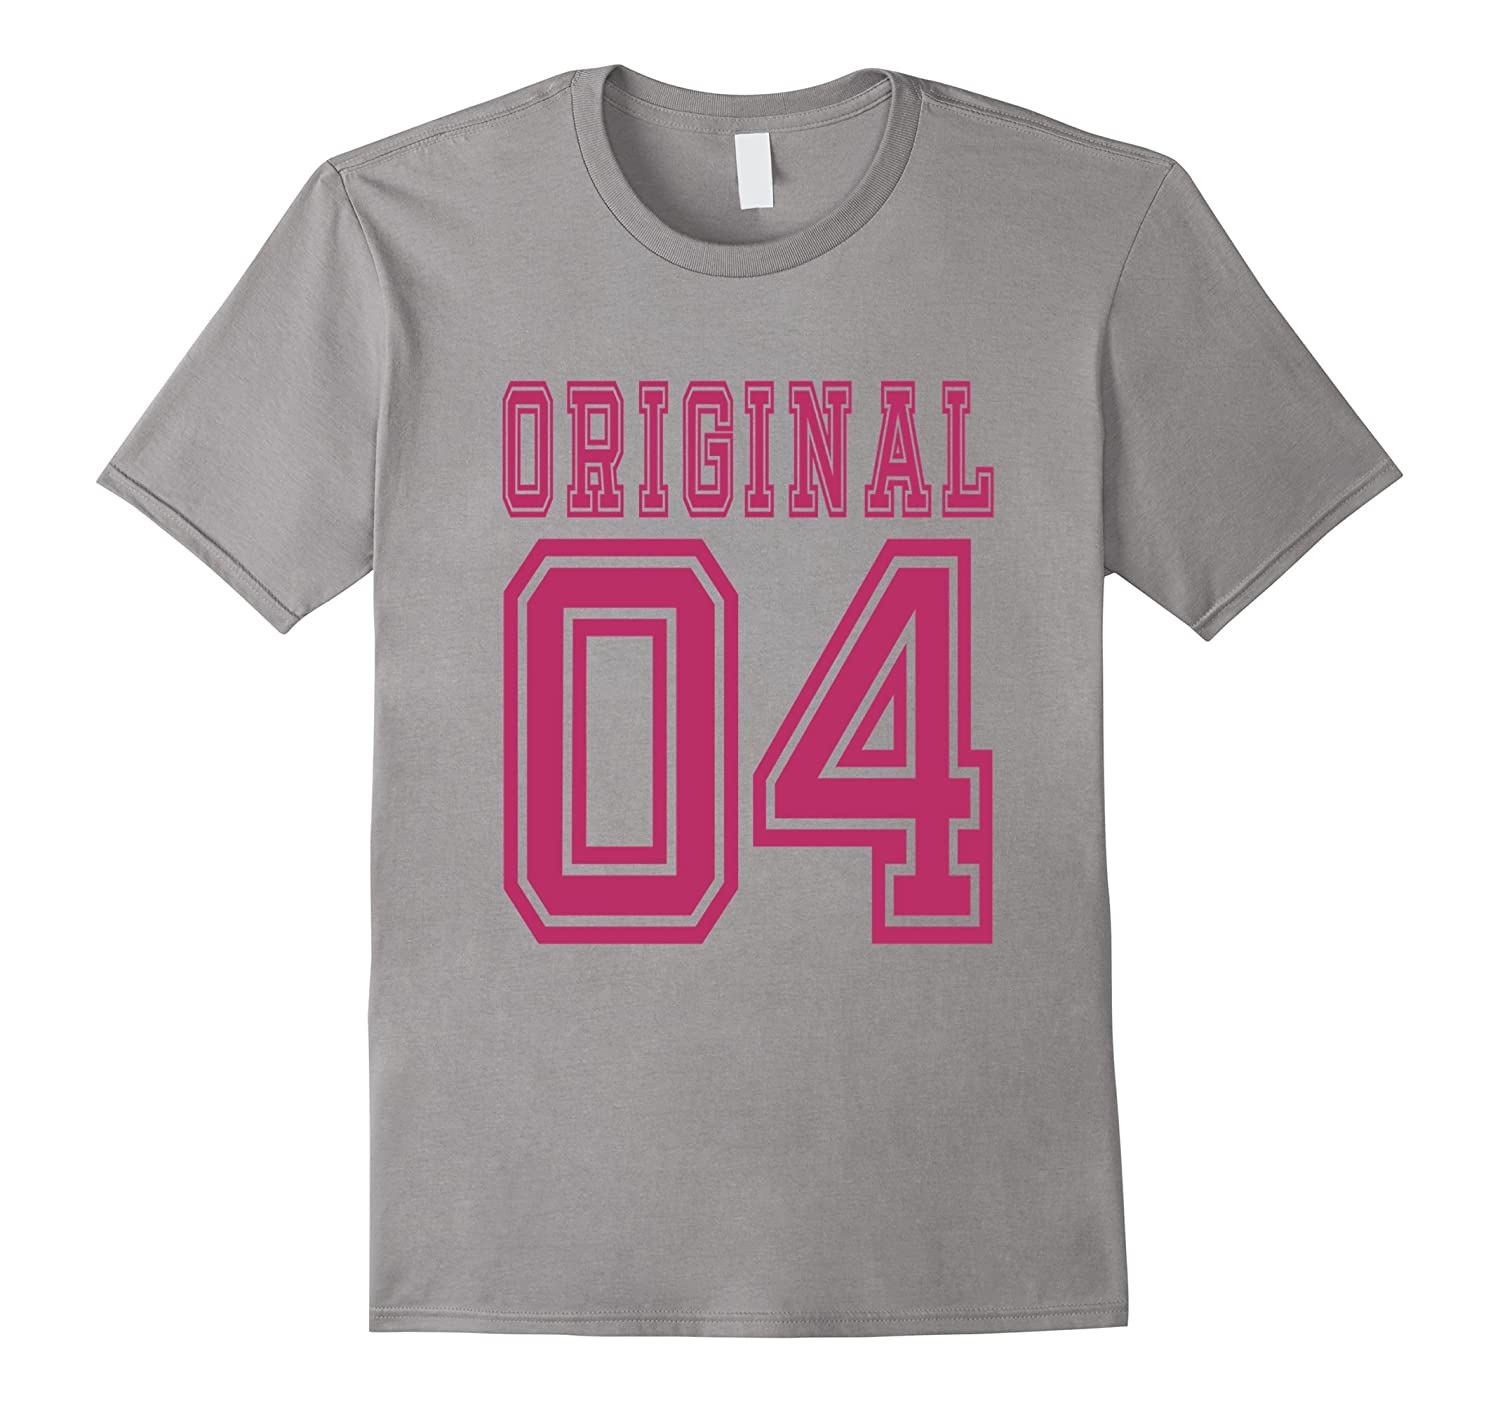 2004 T-shirt 13th Birthday Gift 13 Year Old Girl B-day Cute-TH